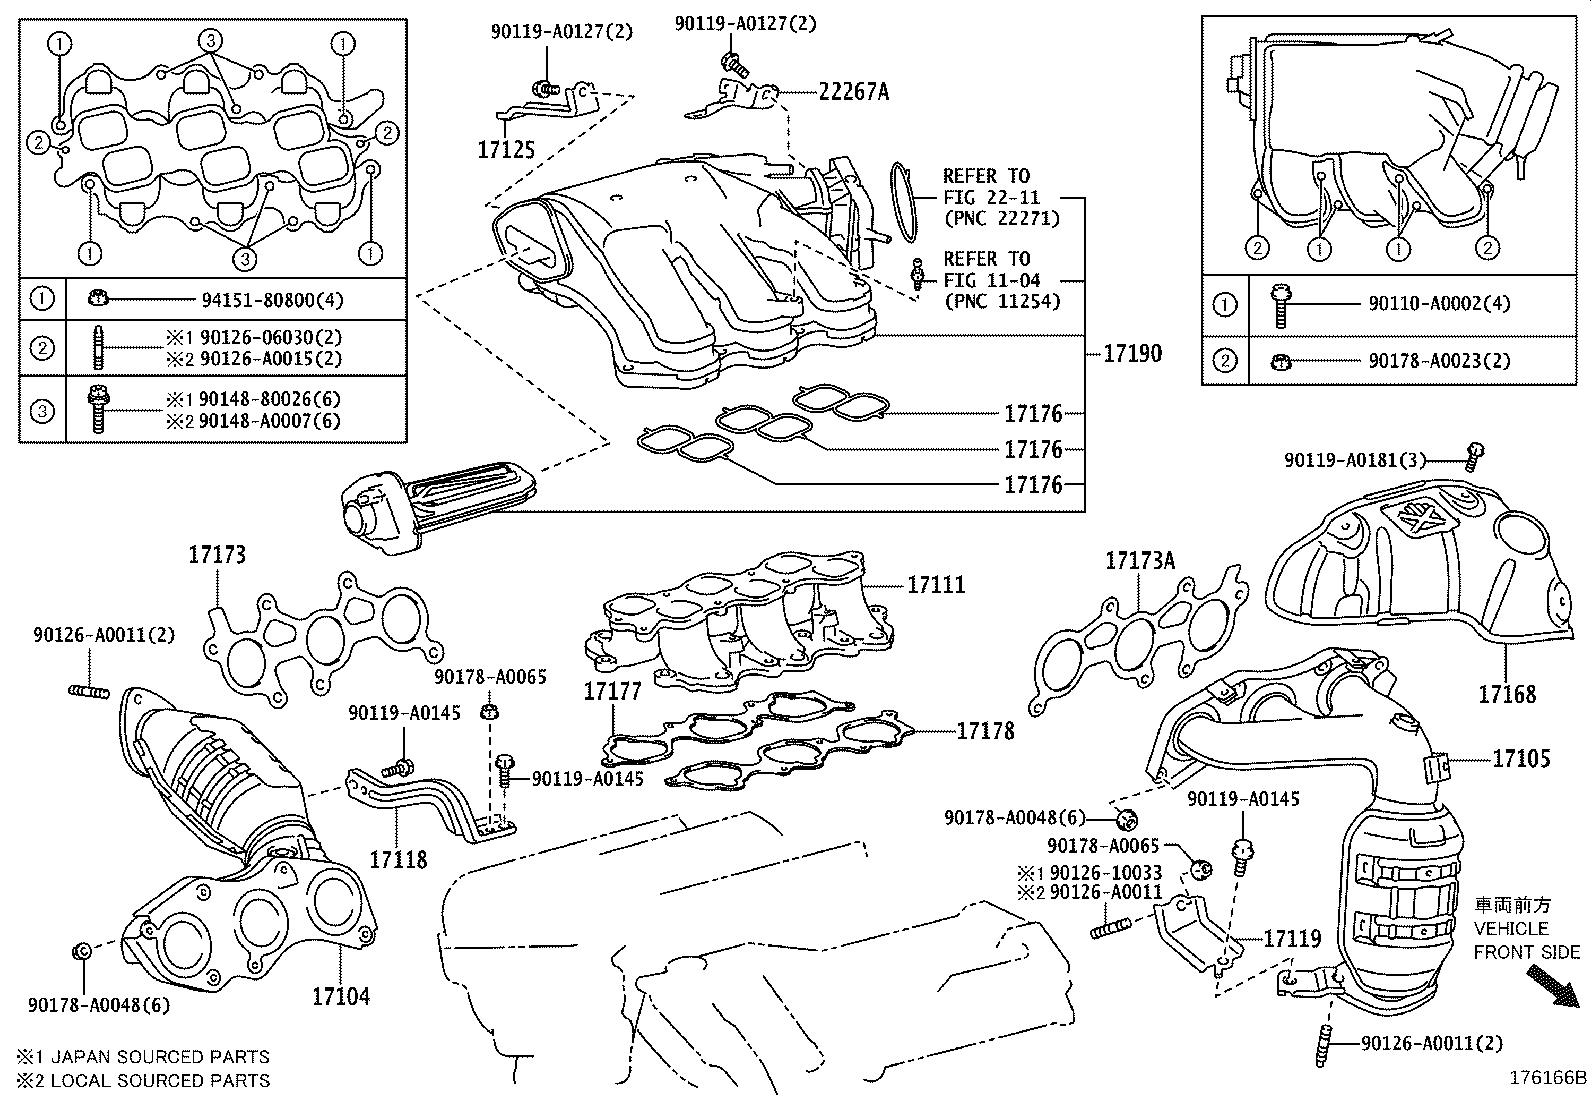 Toyota Rav4 Converter Sub Assembly Exhaust Manifold Engine